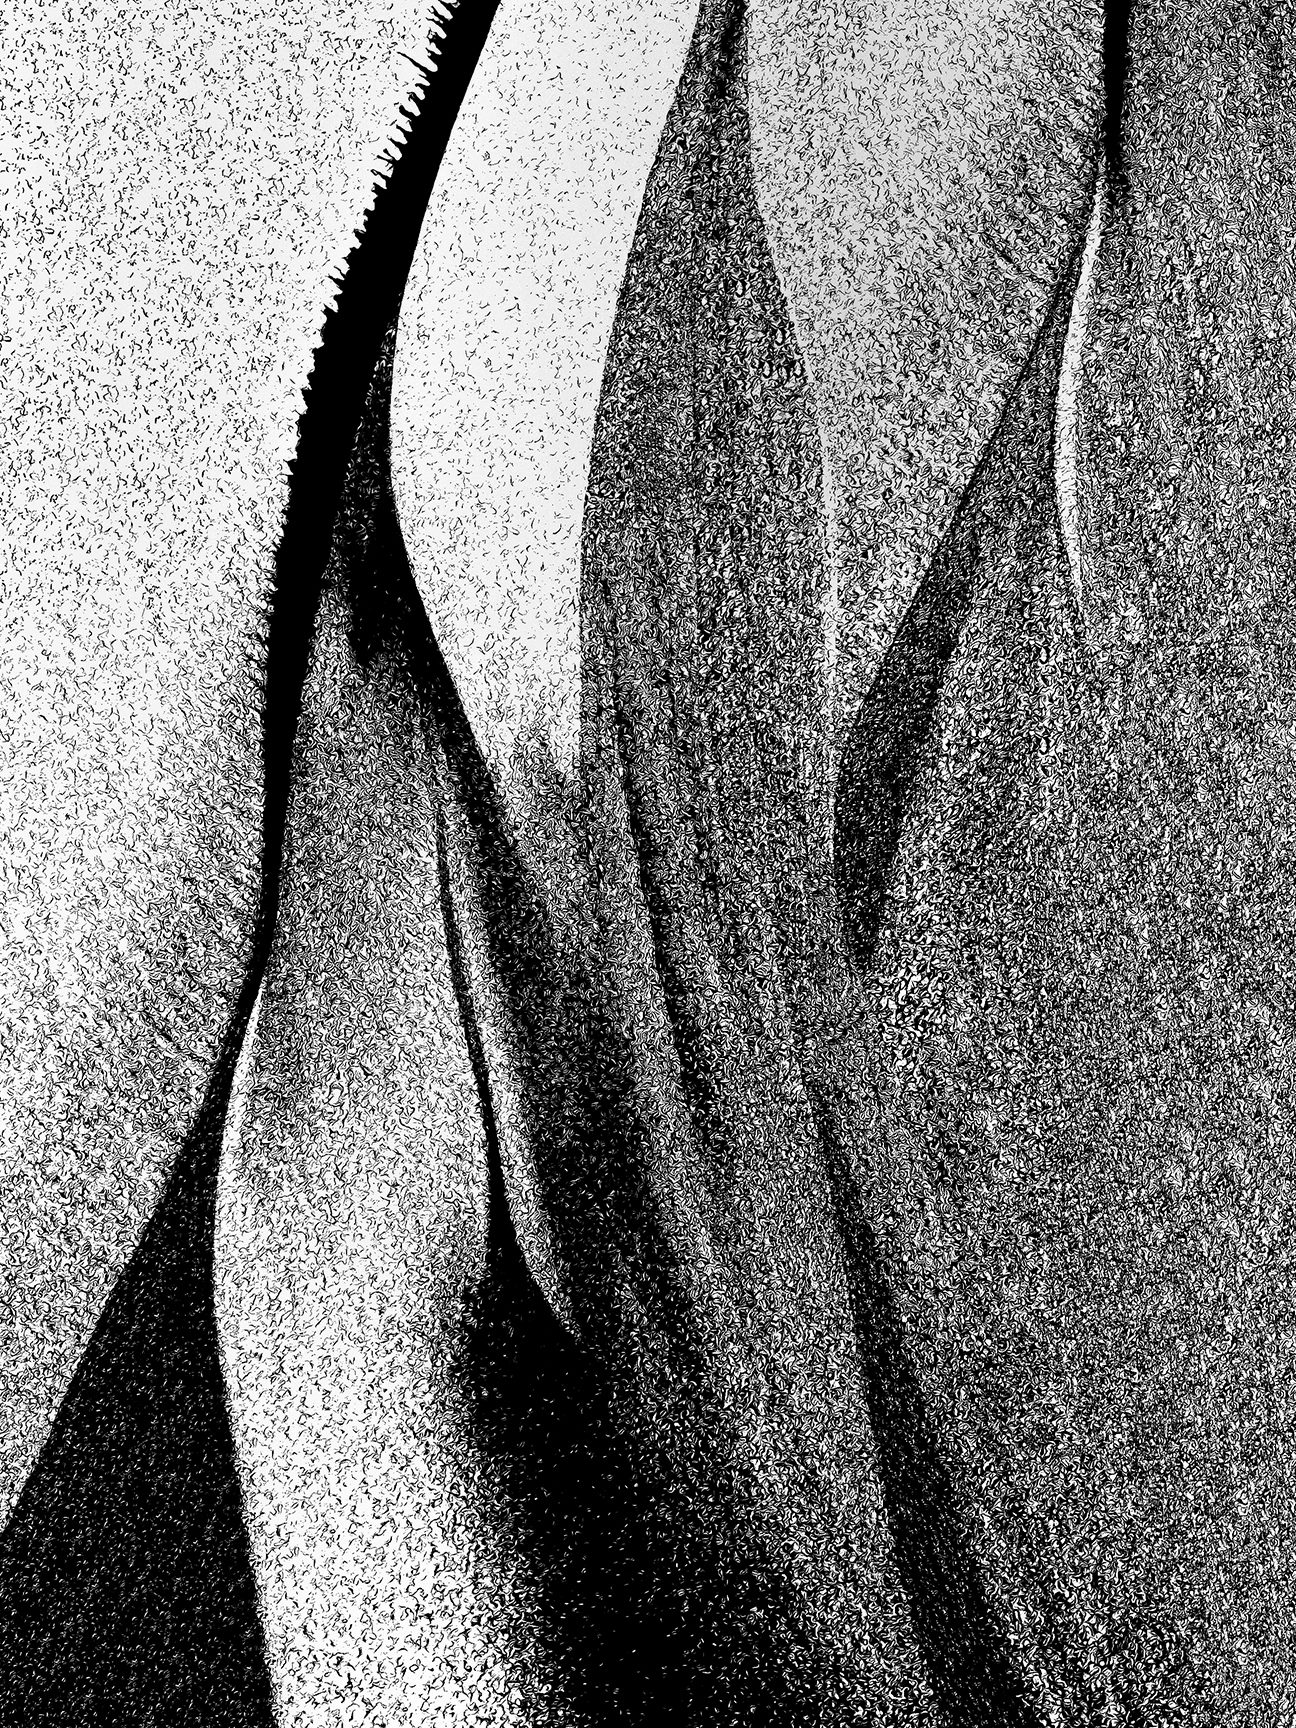 veins-of-the-sea-3-cropped